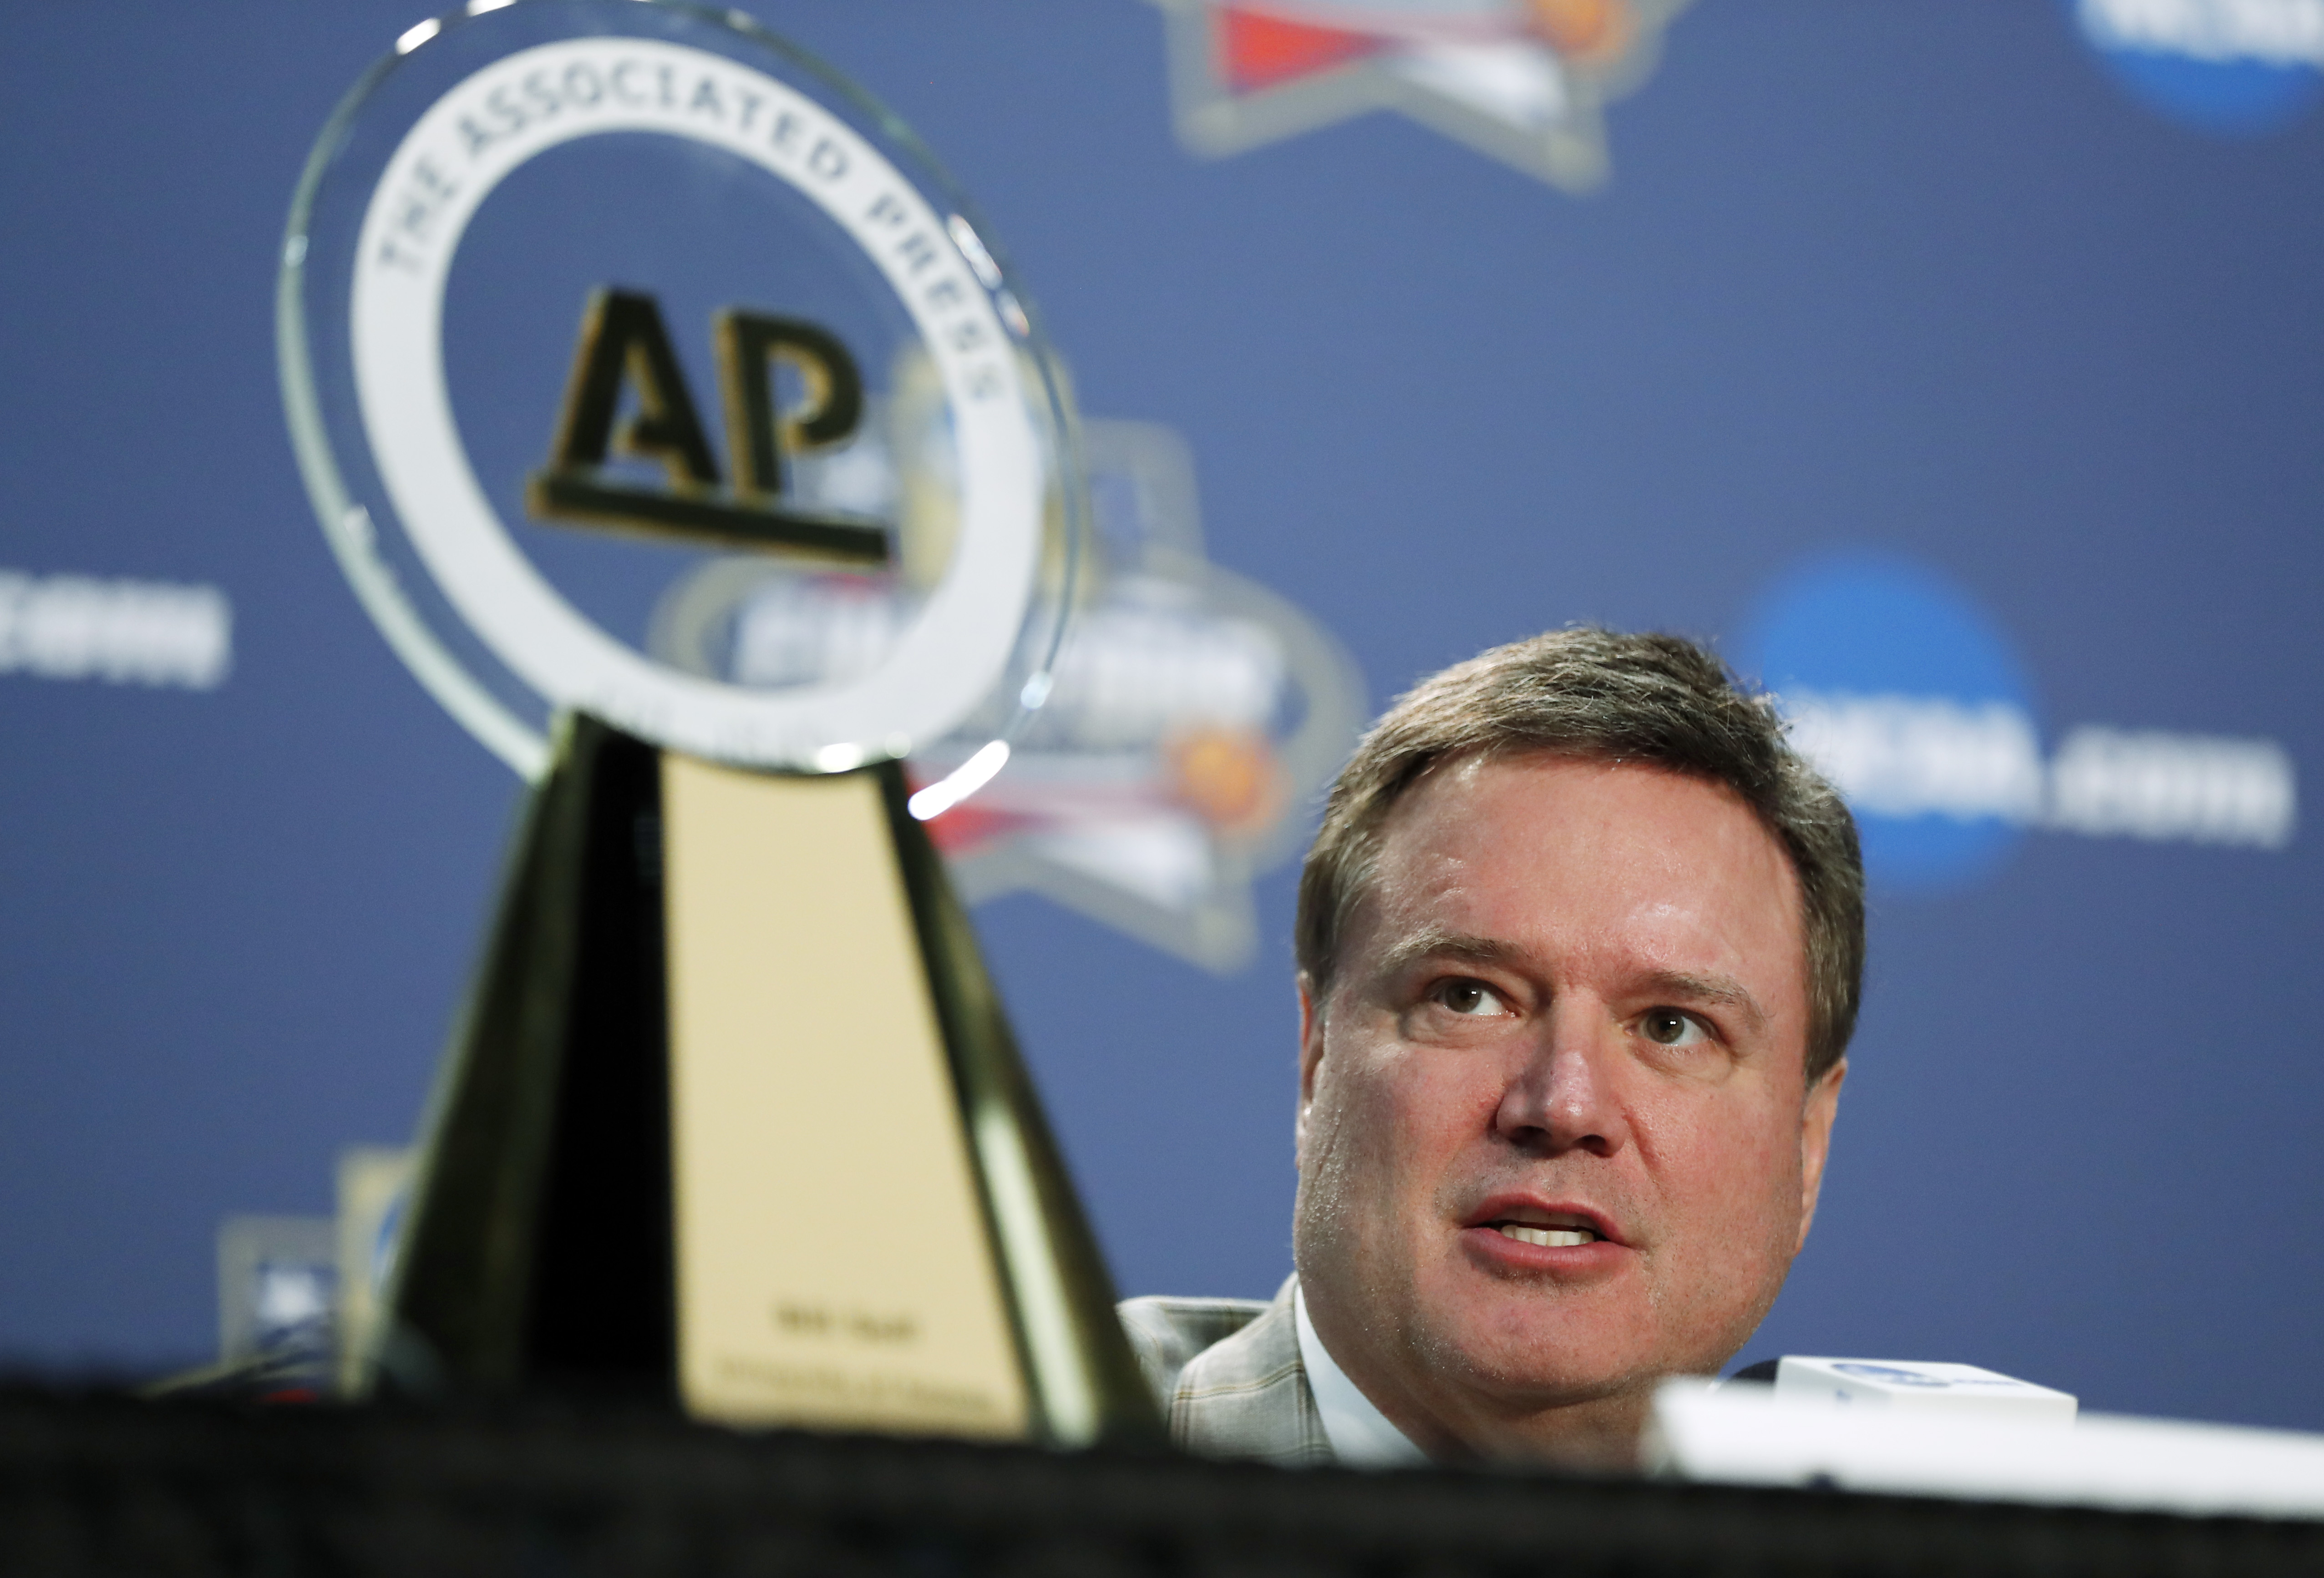 Kansas coach Bill Self answers a question near his Associated Press Coach of the Year trophy at a news conference at the NCAA Final Four college basketball tournament Thursday, March 31, 2016, in Houston. (AP Photo/David J. Phillip)